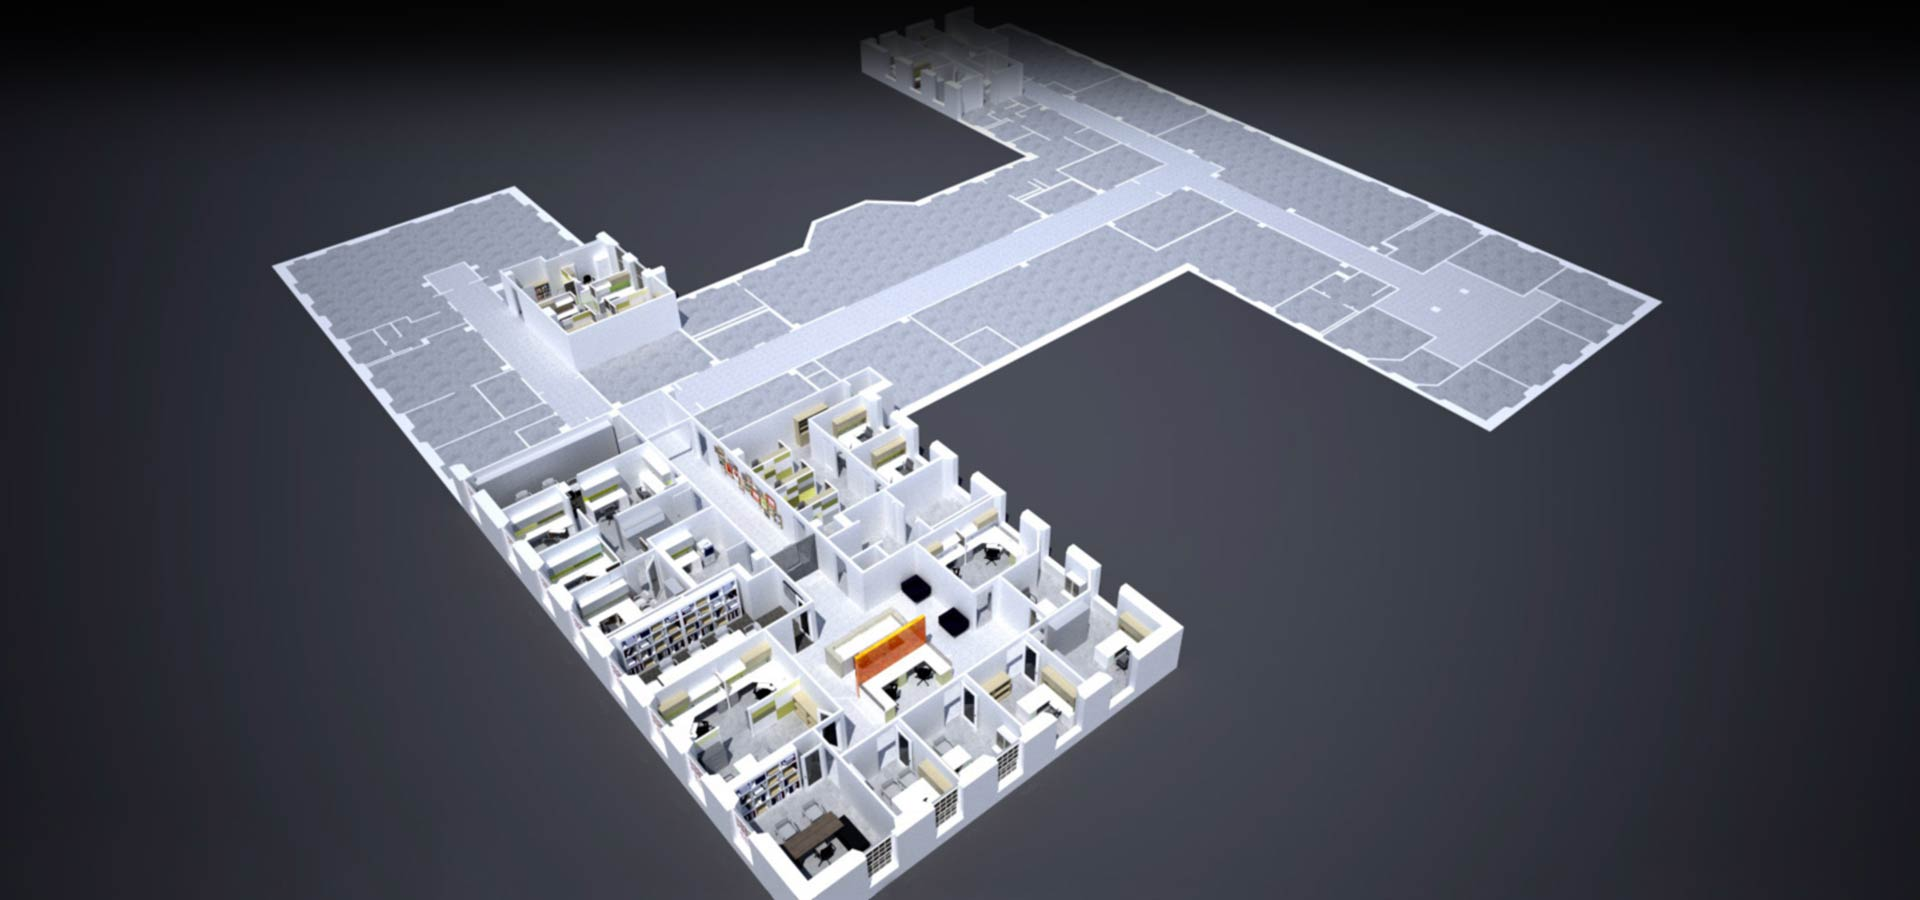 architectural blueprint and design of offices for el museo overview and architecture for nyc department of buildings zones and code compliant architecture